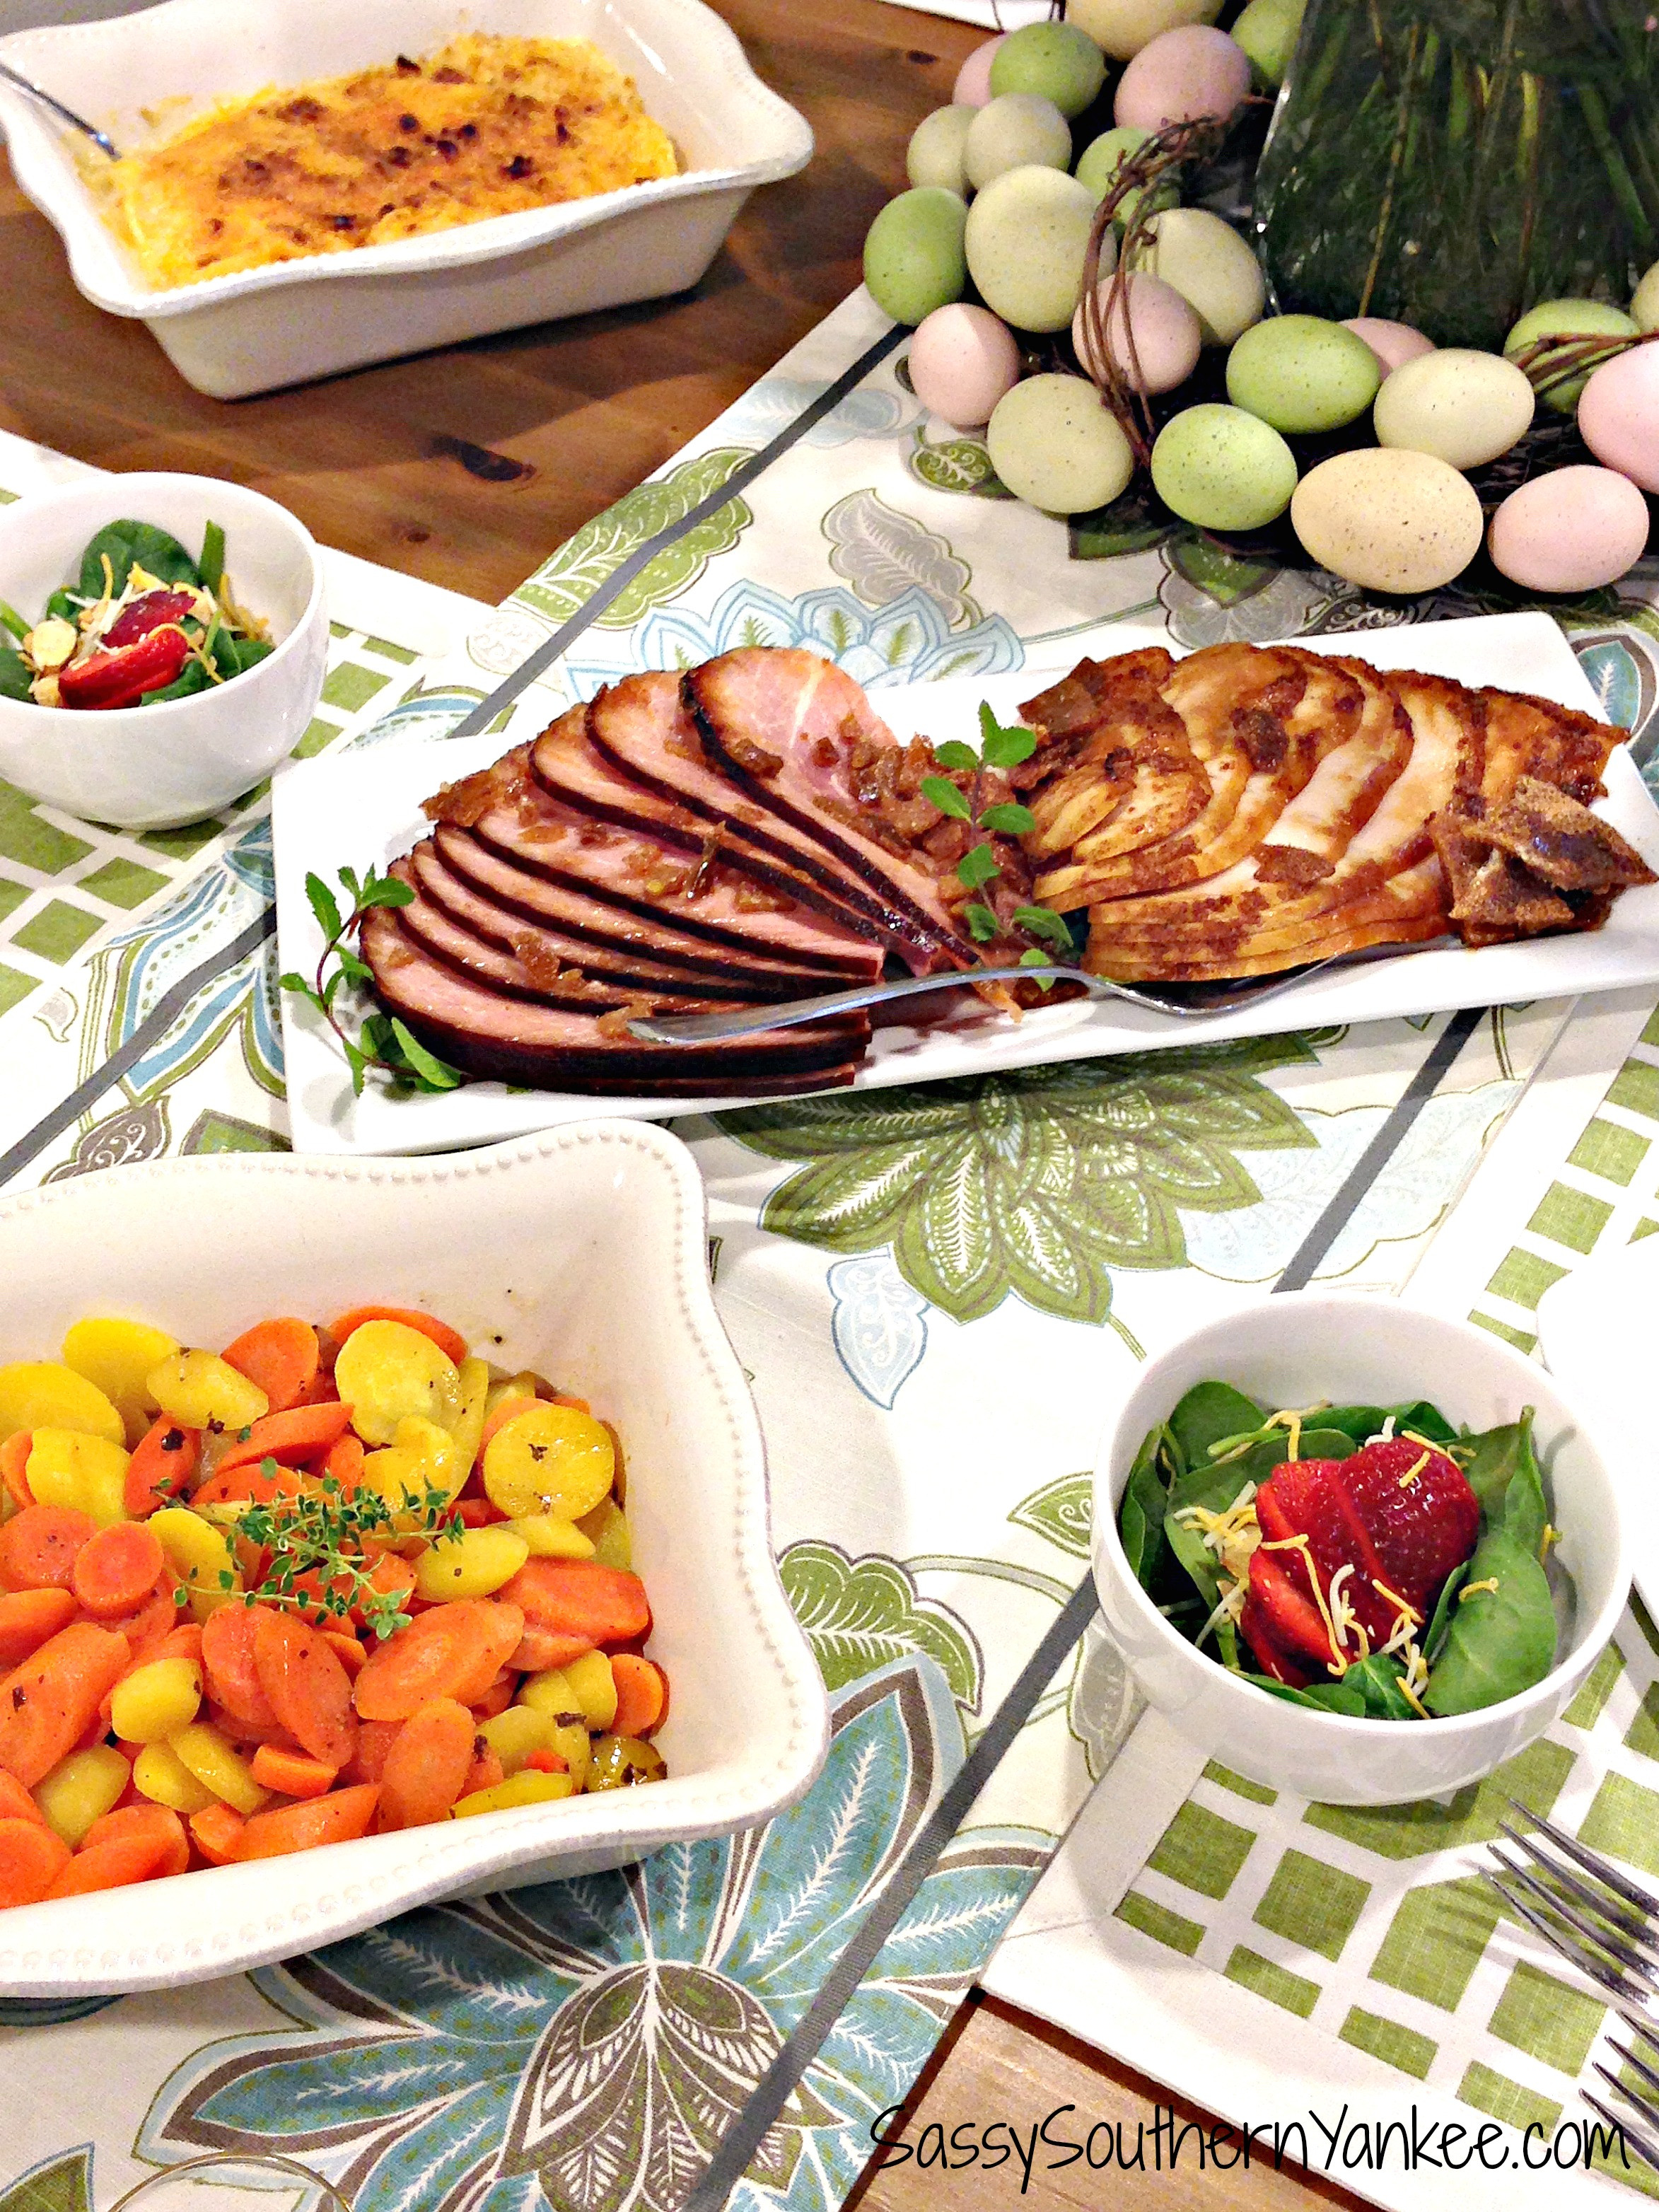 Honeybaked Ham Easter Dinner  Delicious and Easy Easter Dinner with HoneyBaked Ham